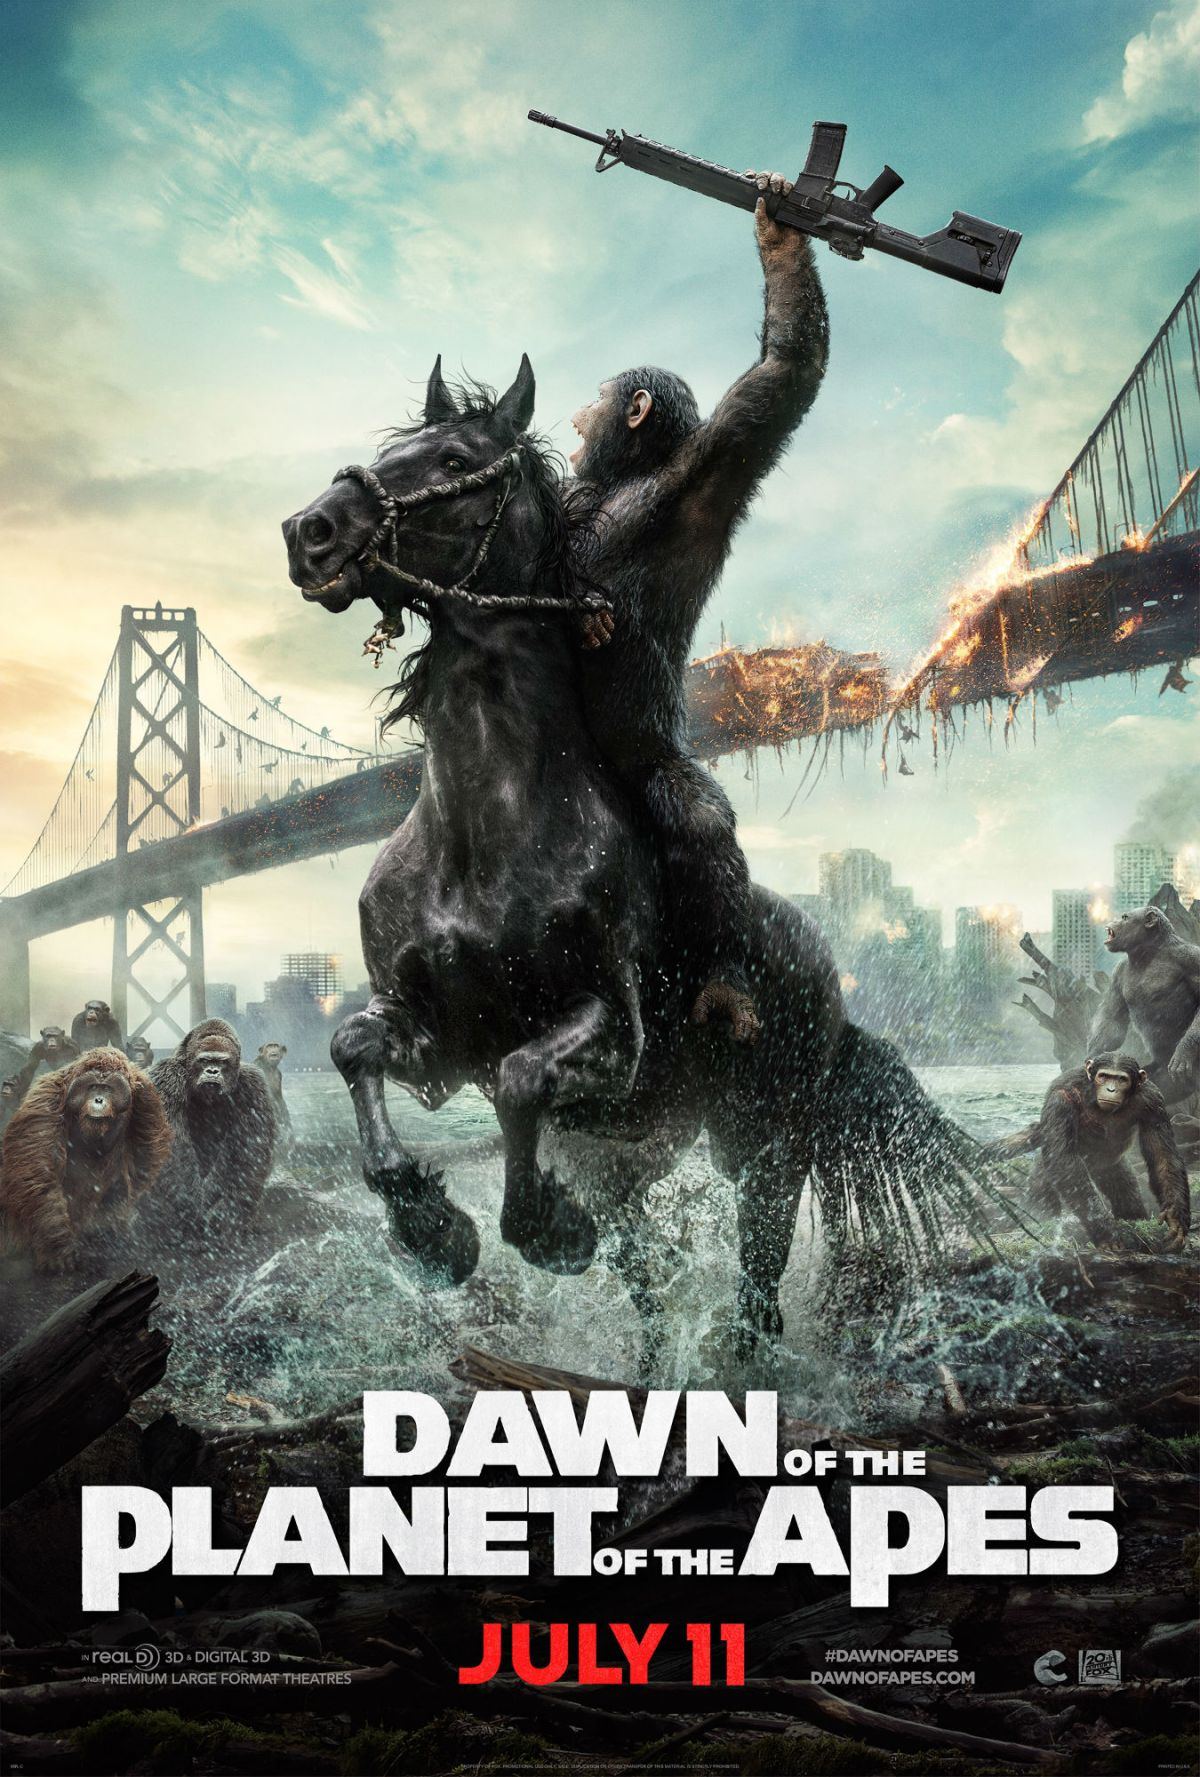 Dawn of the Planet of the Apes (2014, dir. MattReeves)